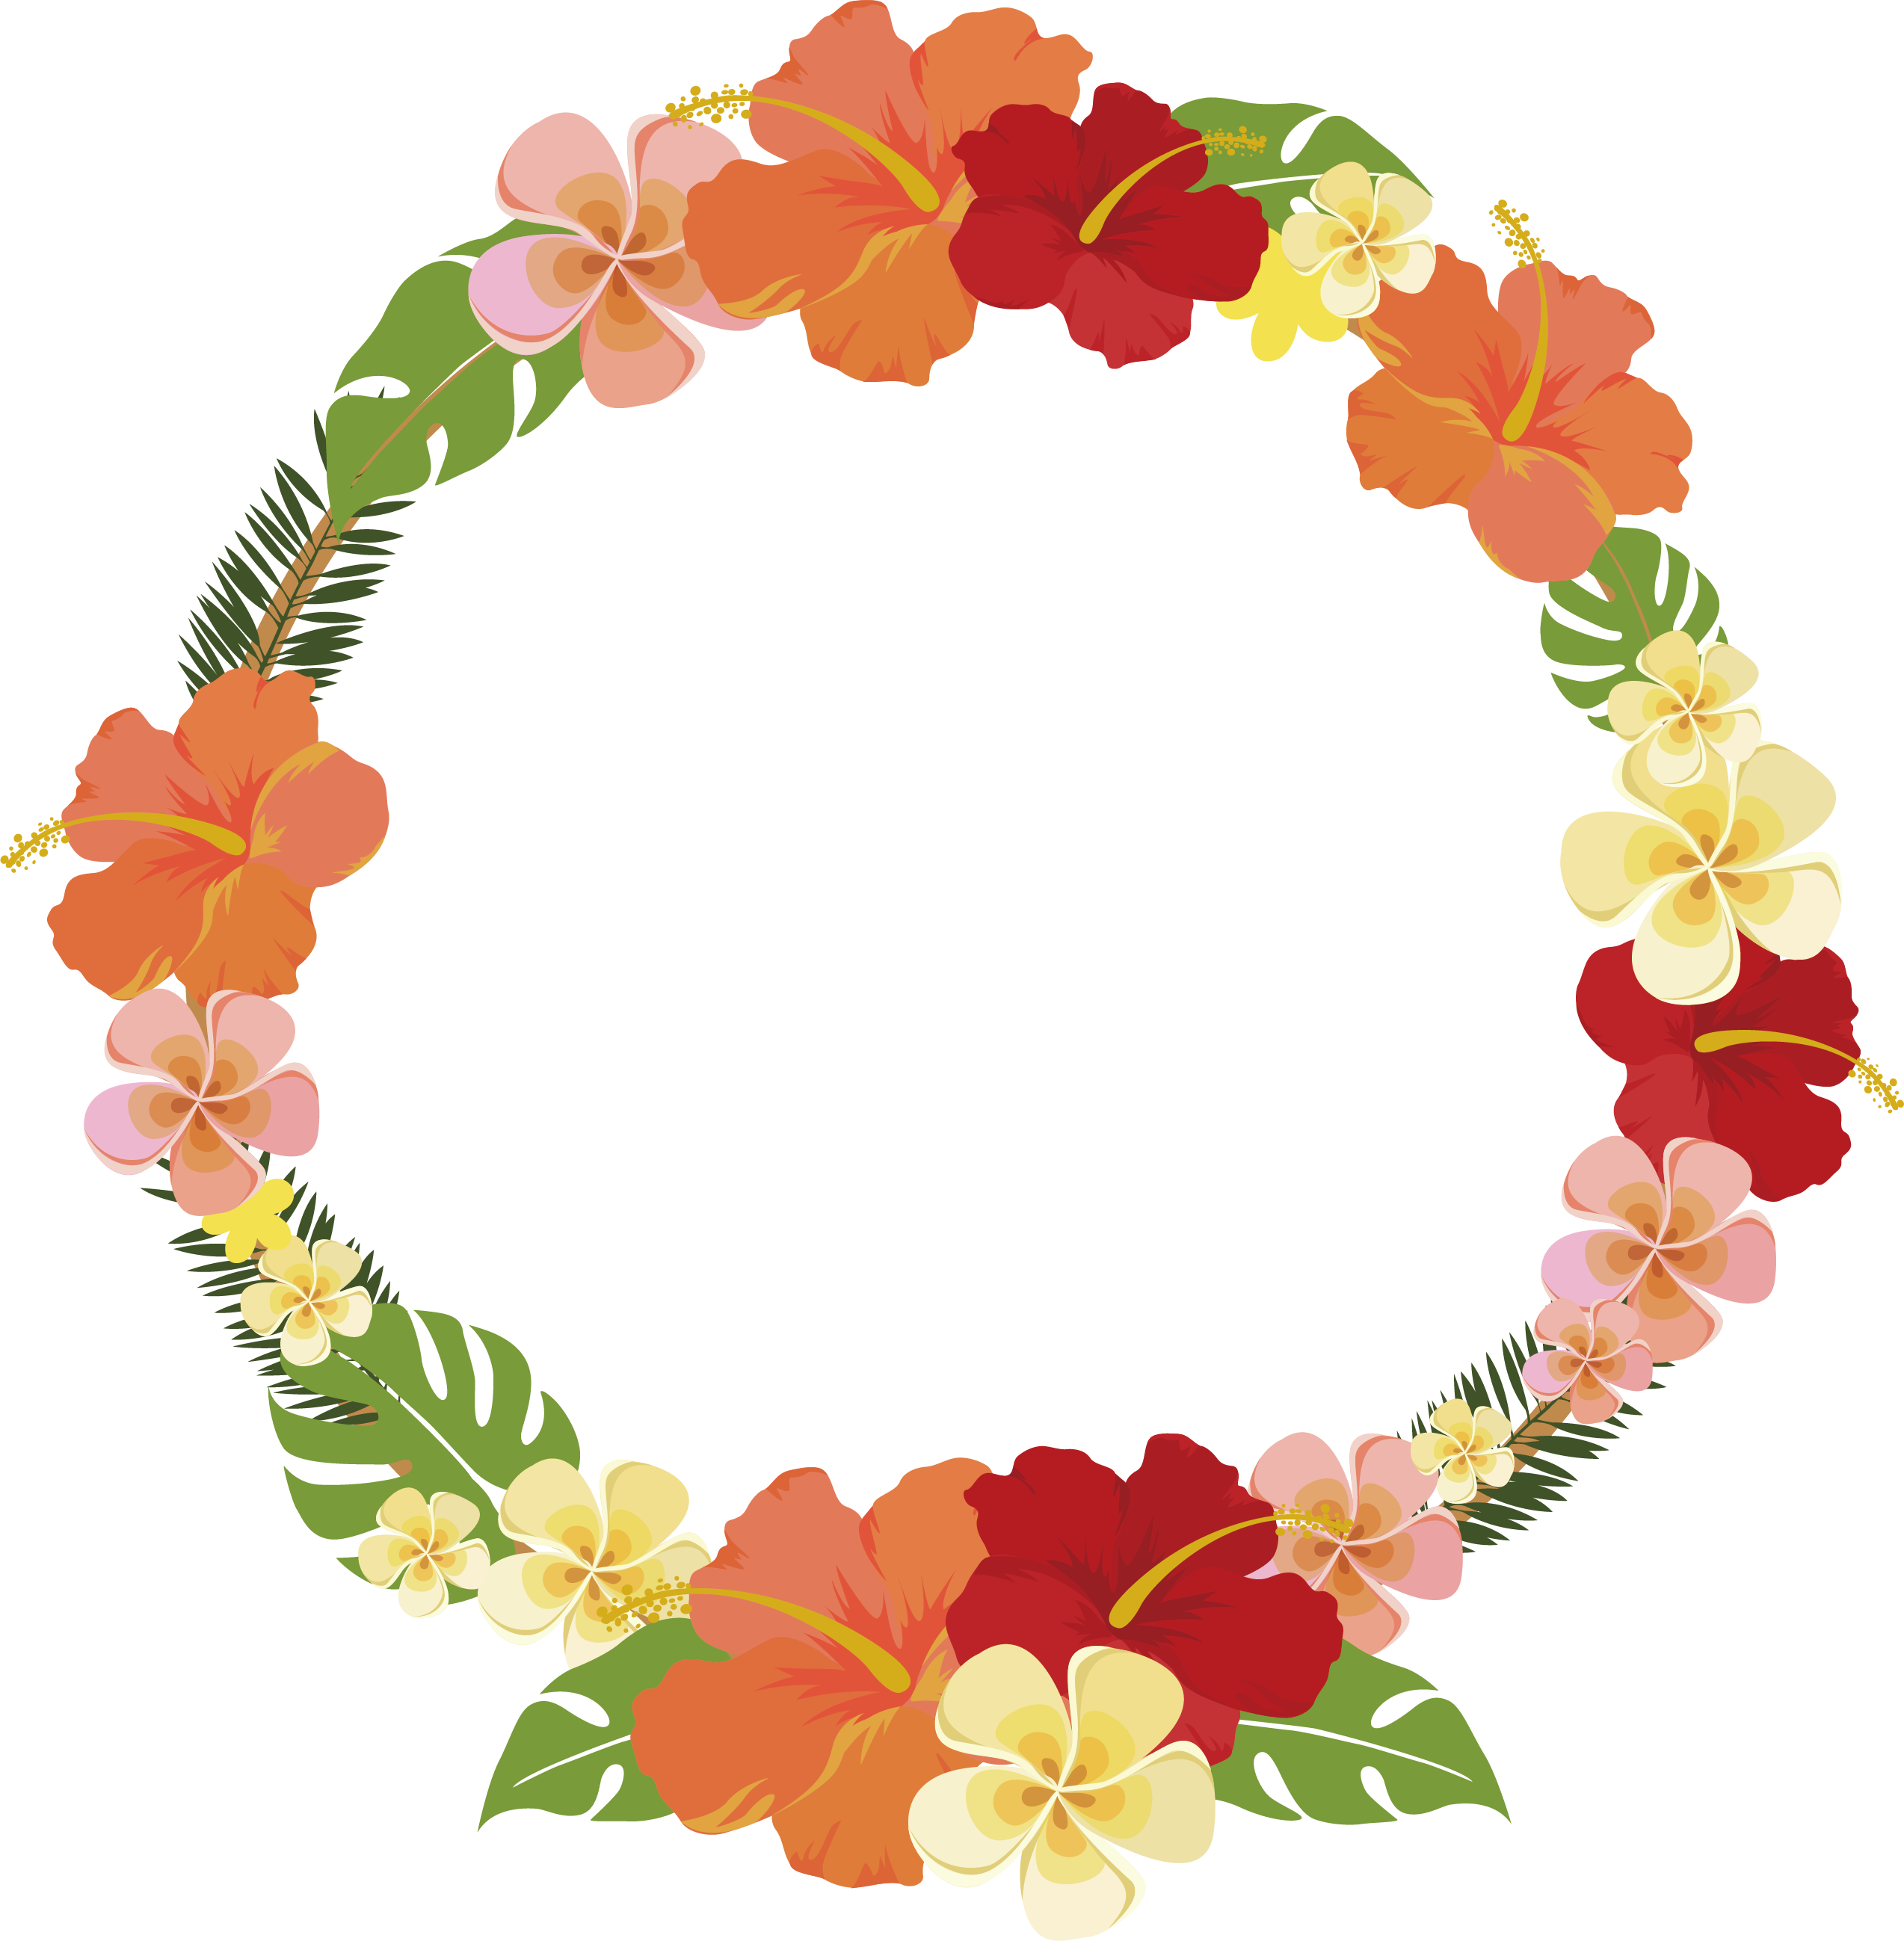 Transparent summer flowers clipart - Round Summer Flower Decorative Frame 2547*2597 Transprent - Round Flower Frame Png